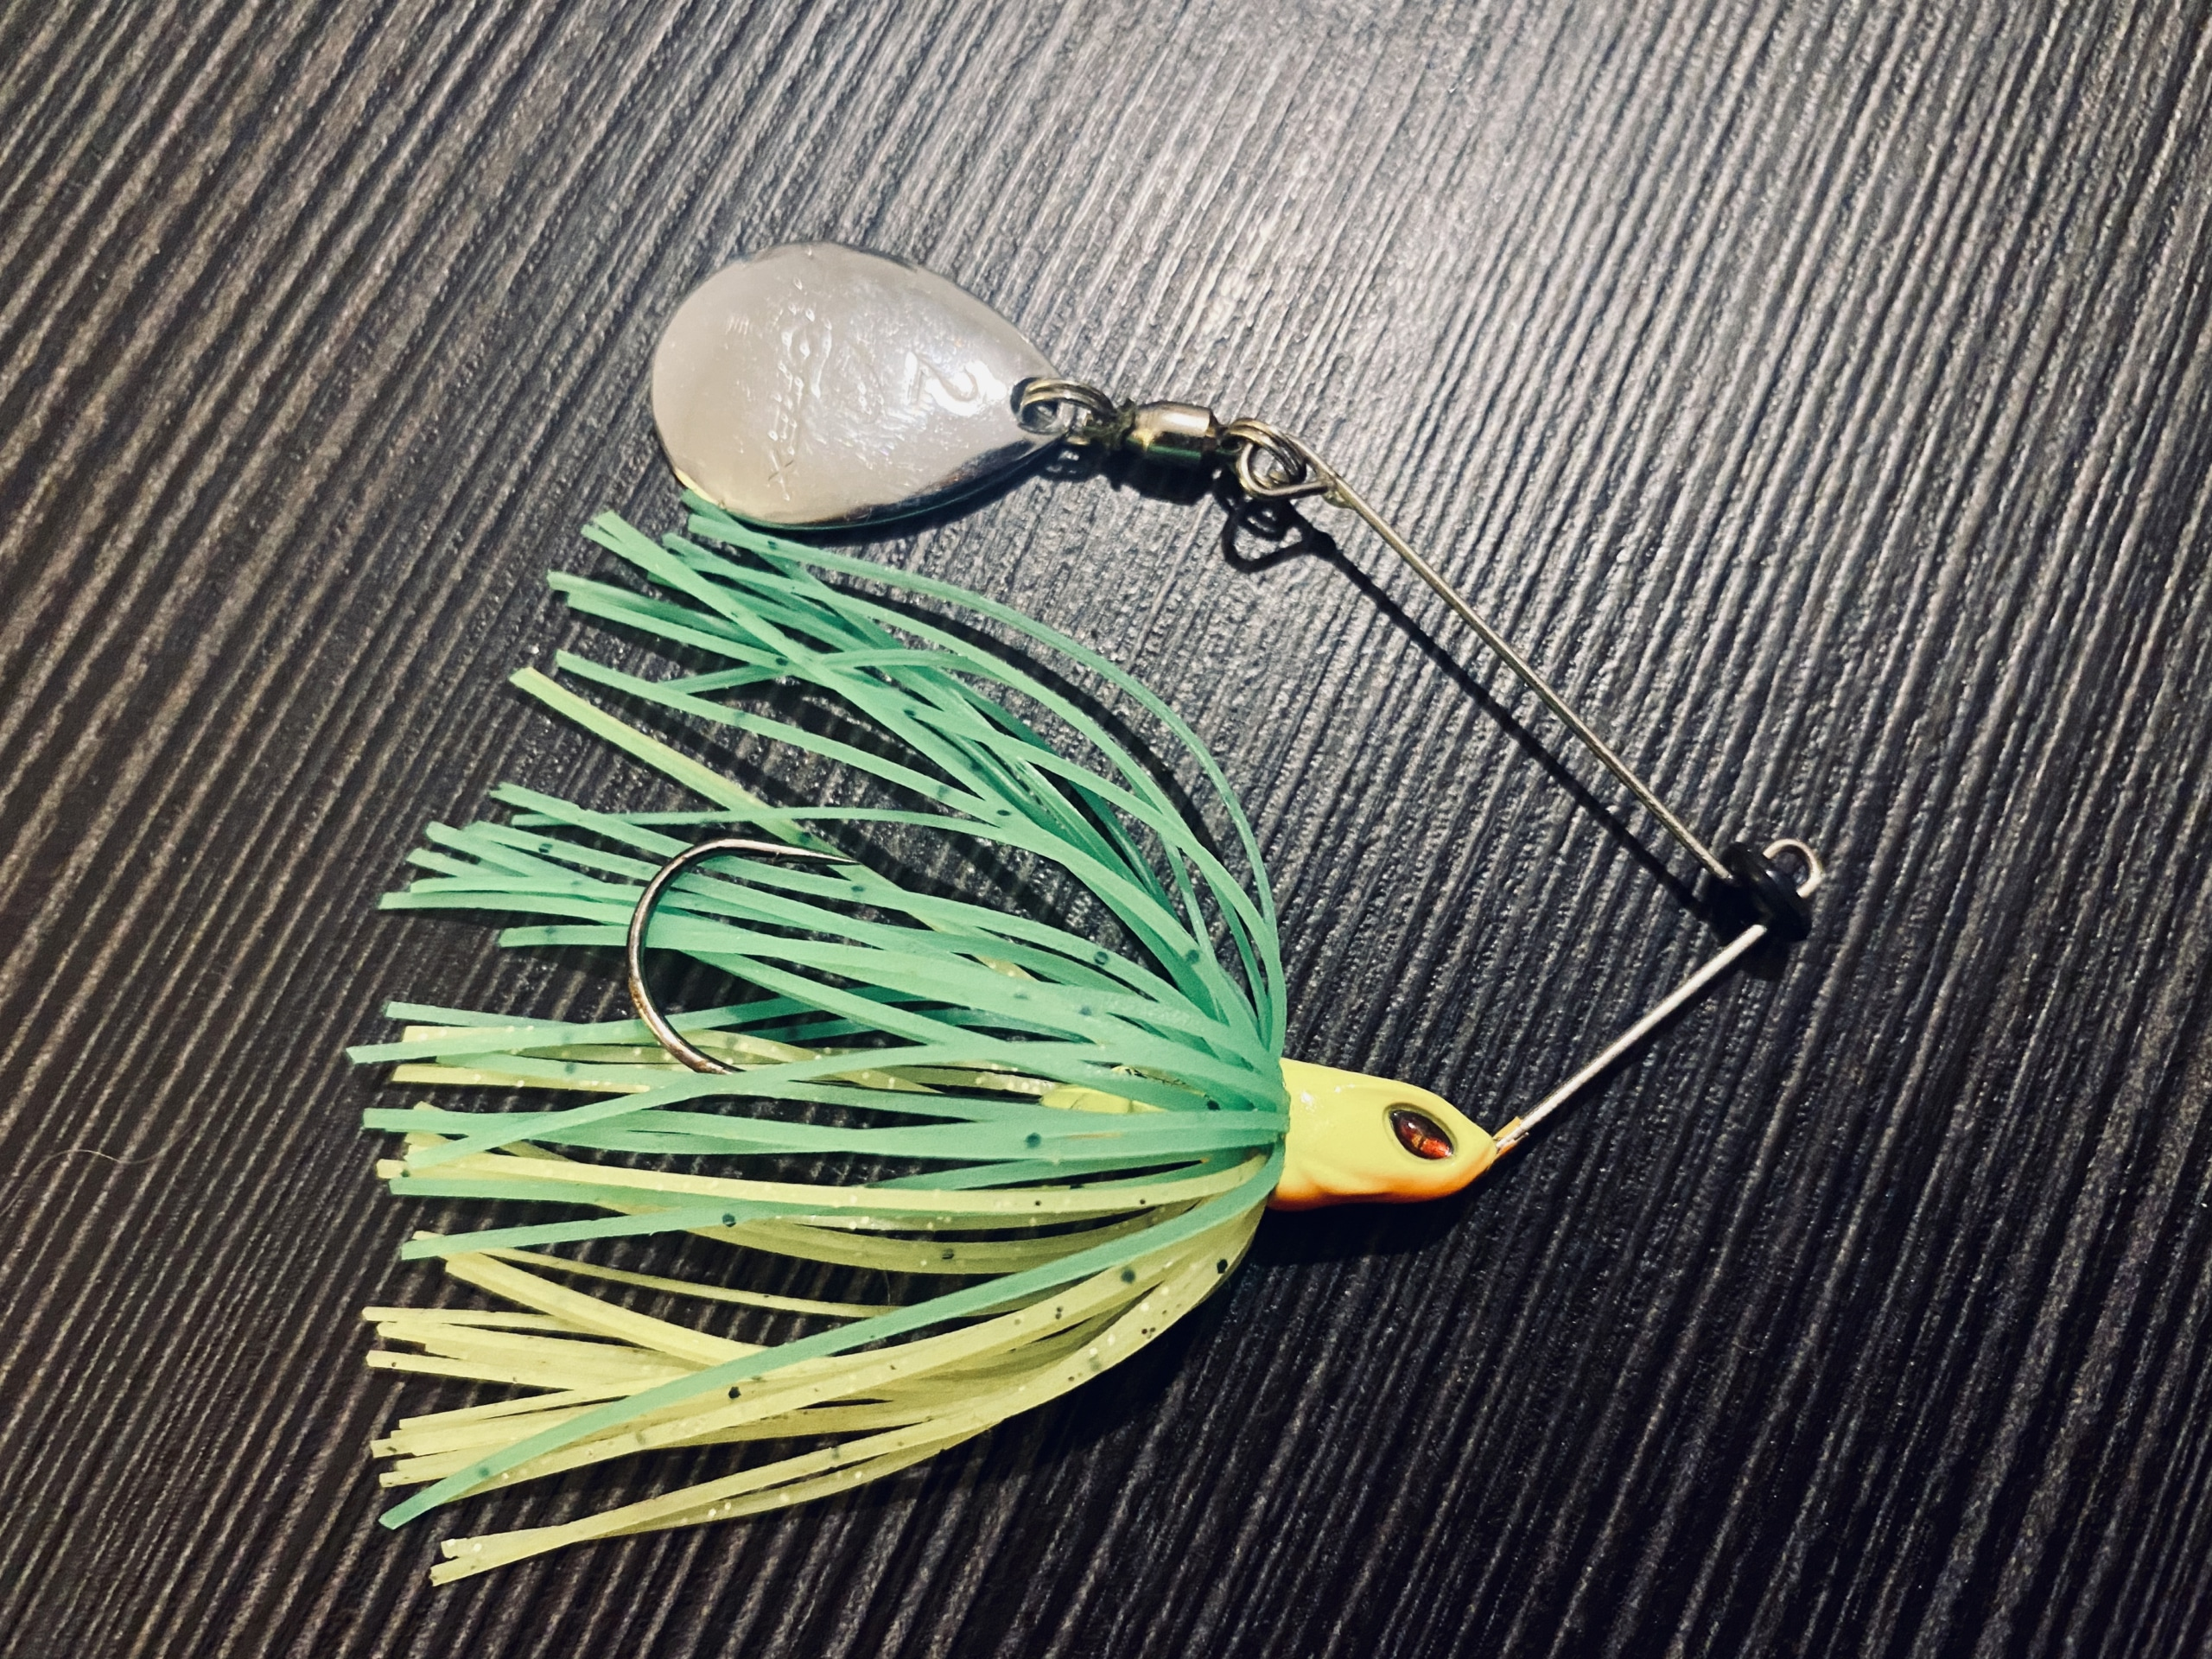 Spinnerbait angehalt